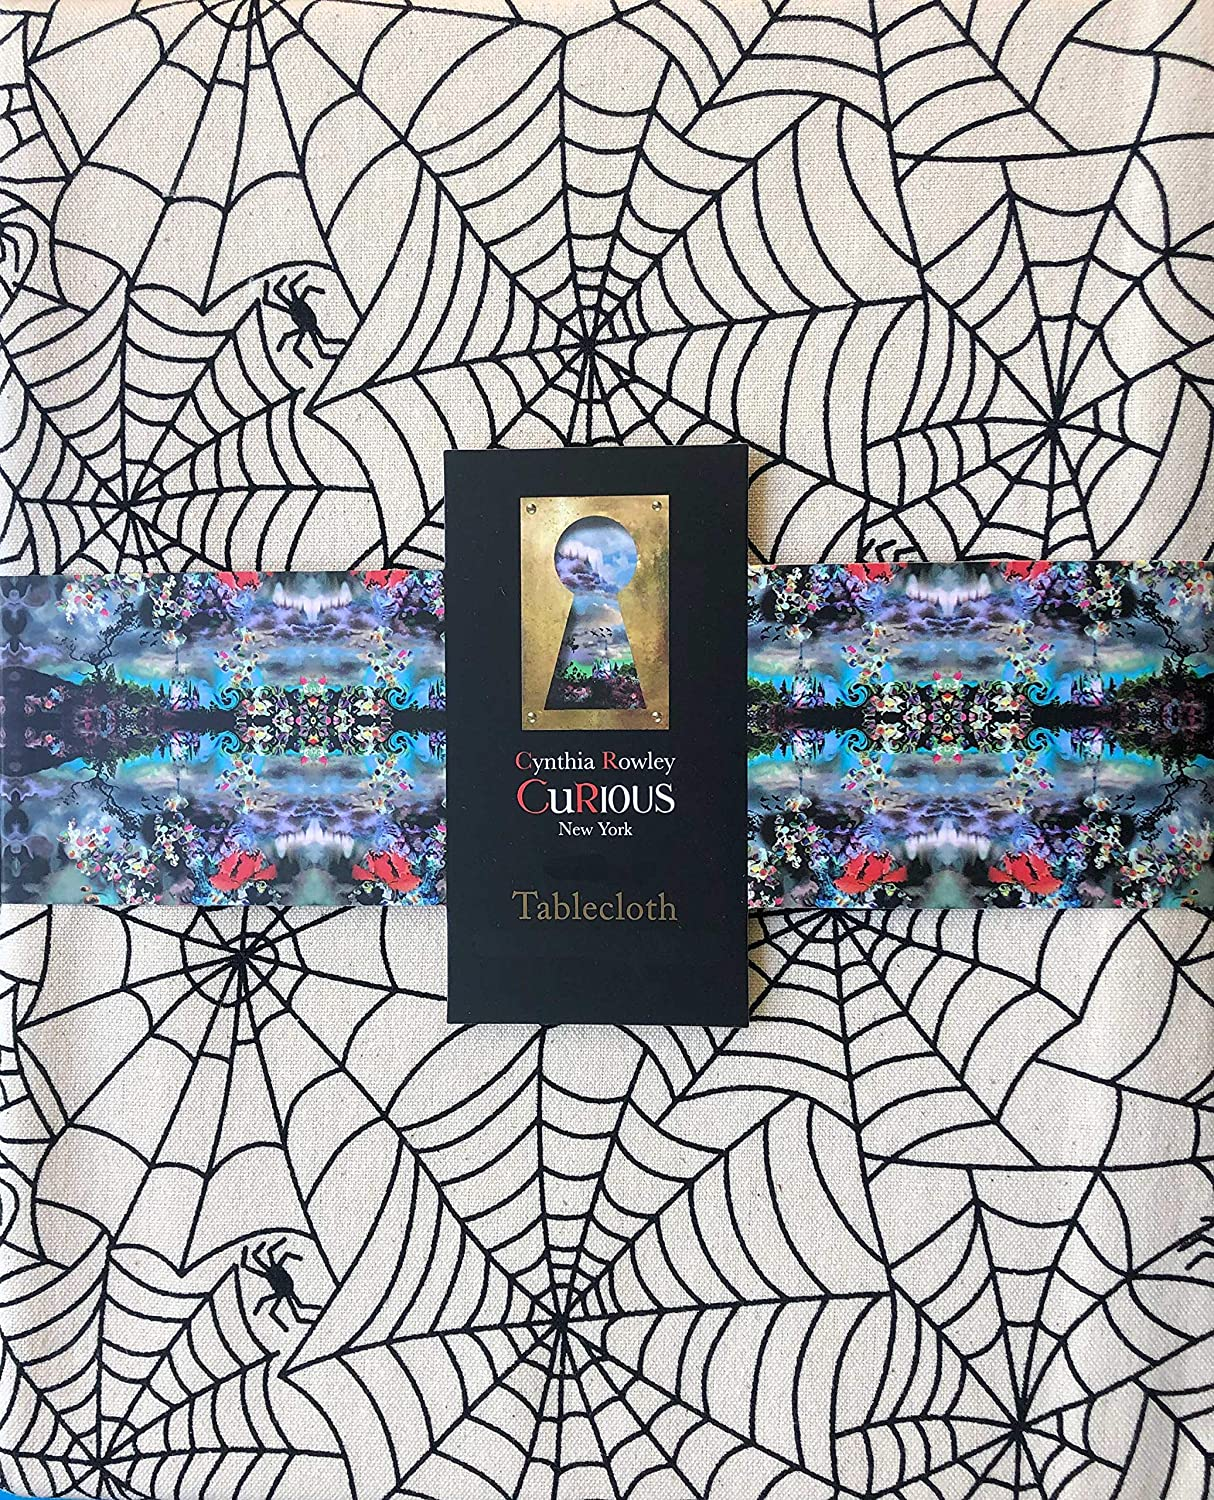 Cynthia Rowley Tablecloth Halloween Spiderweb Pattern with Creepy Black Spiders on Tan, 60 Inches Round